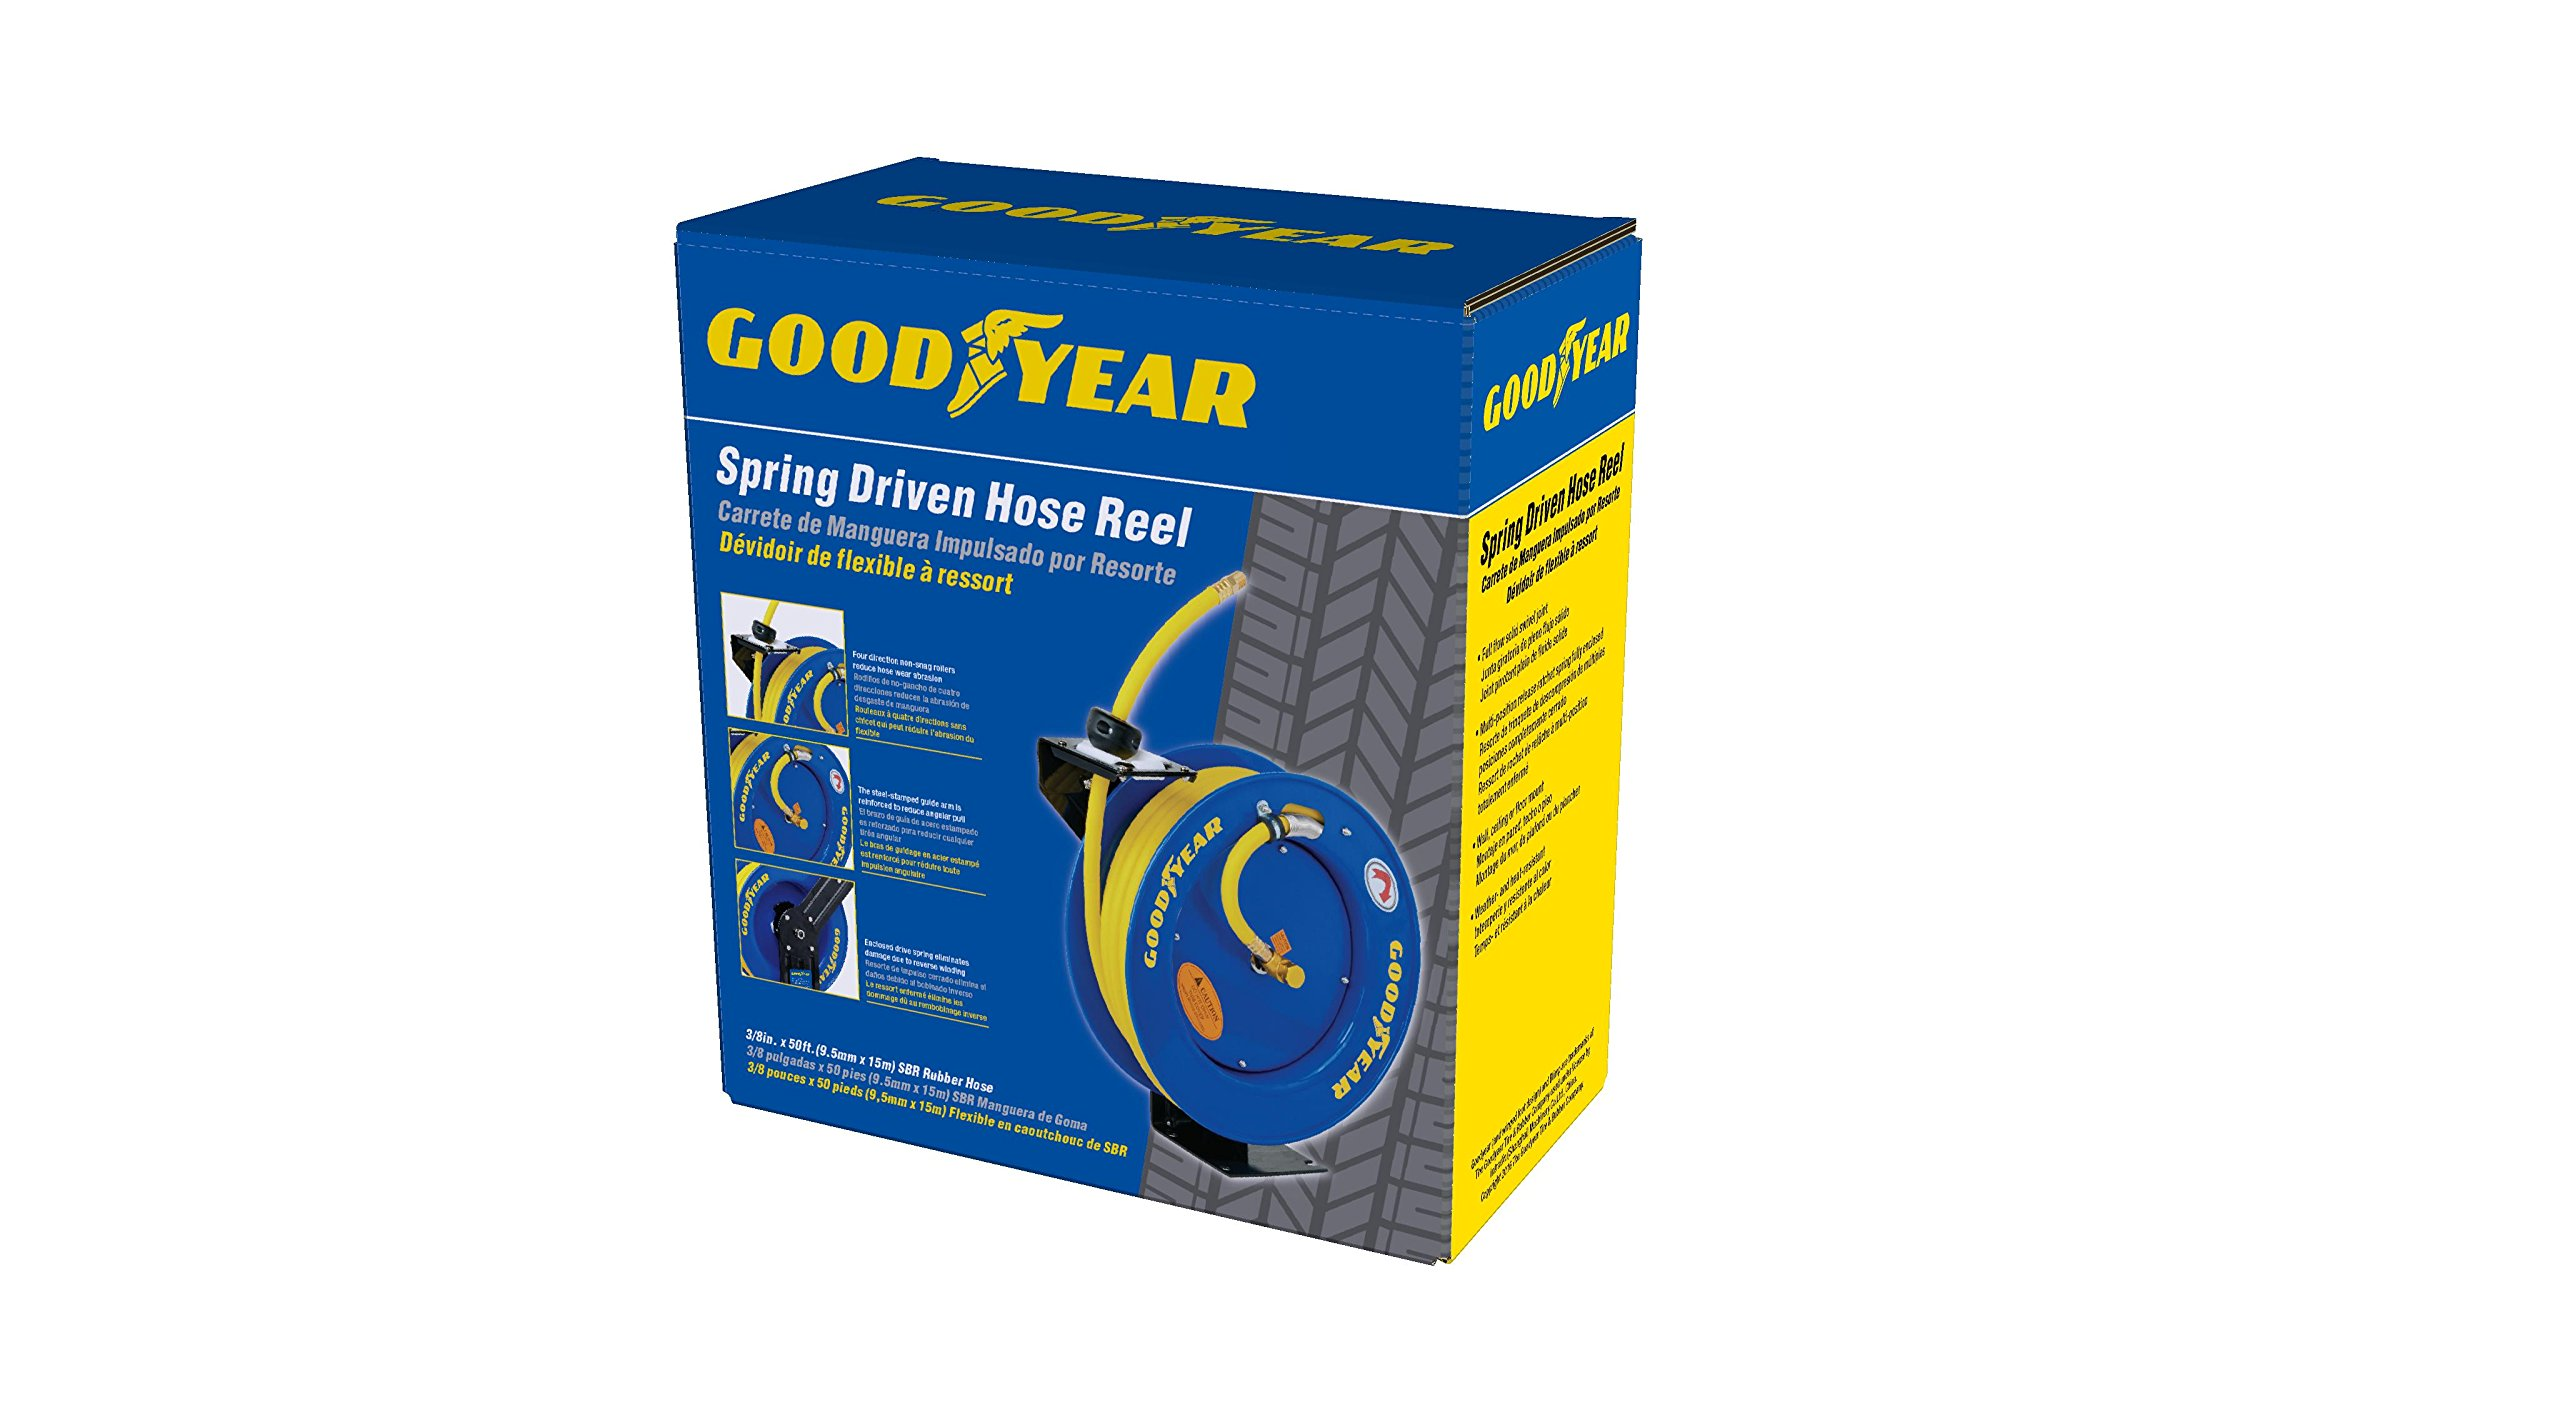 Goodyear L815153G Steel Retractable Air Compressor/Water Hose Reel with 3/8 in. x 50 ft. Rubber Hose, Max. 300PSI by Goodyear (Image #7)